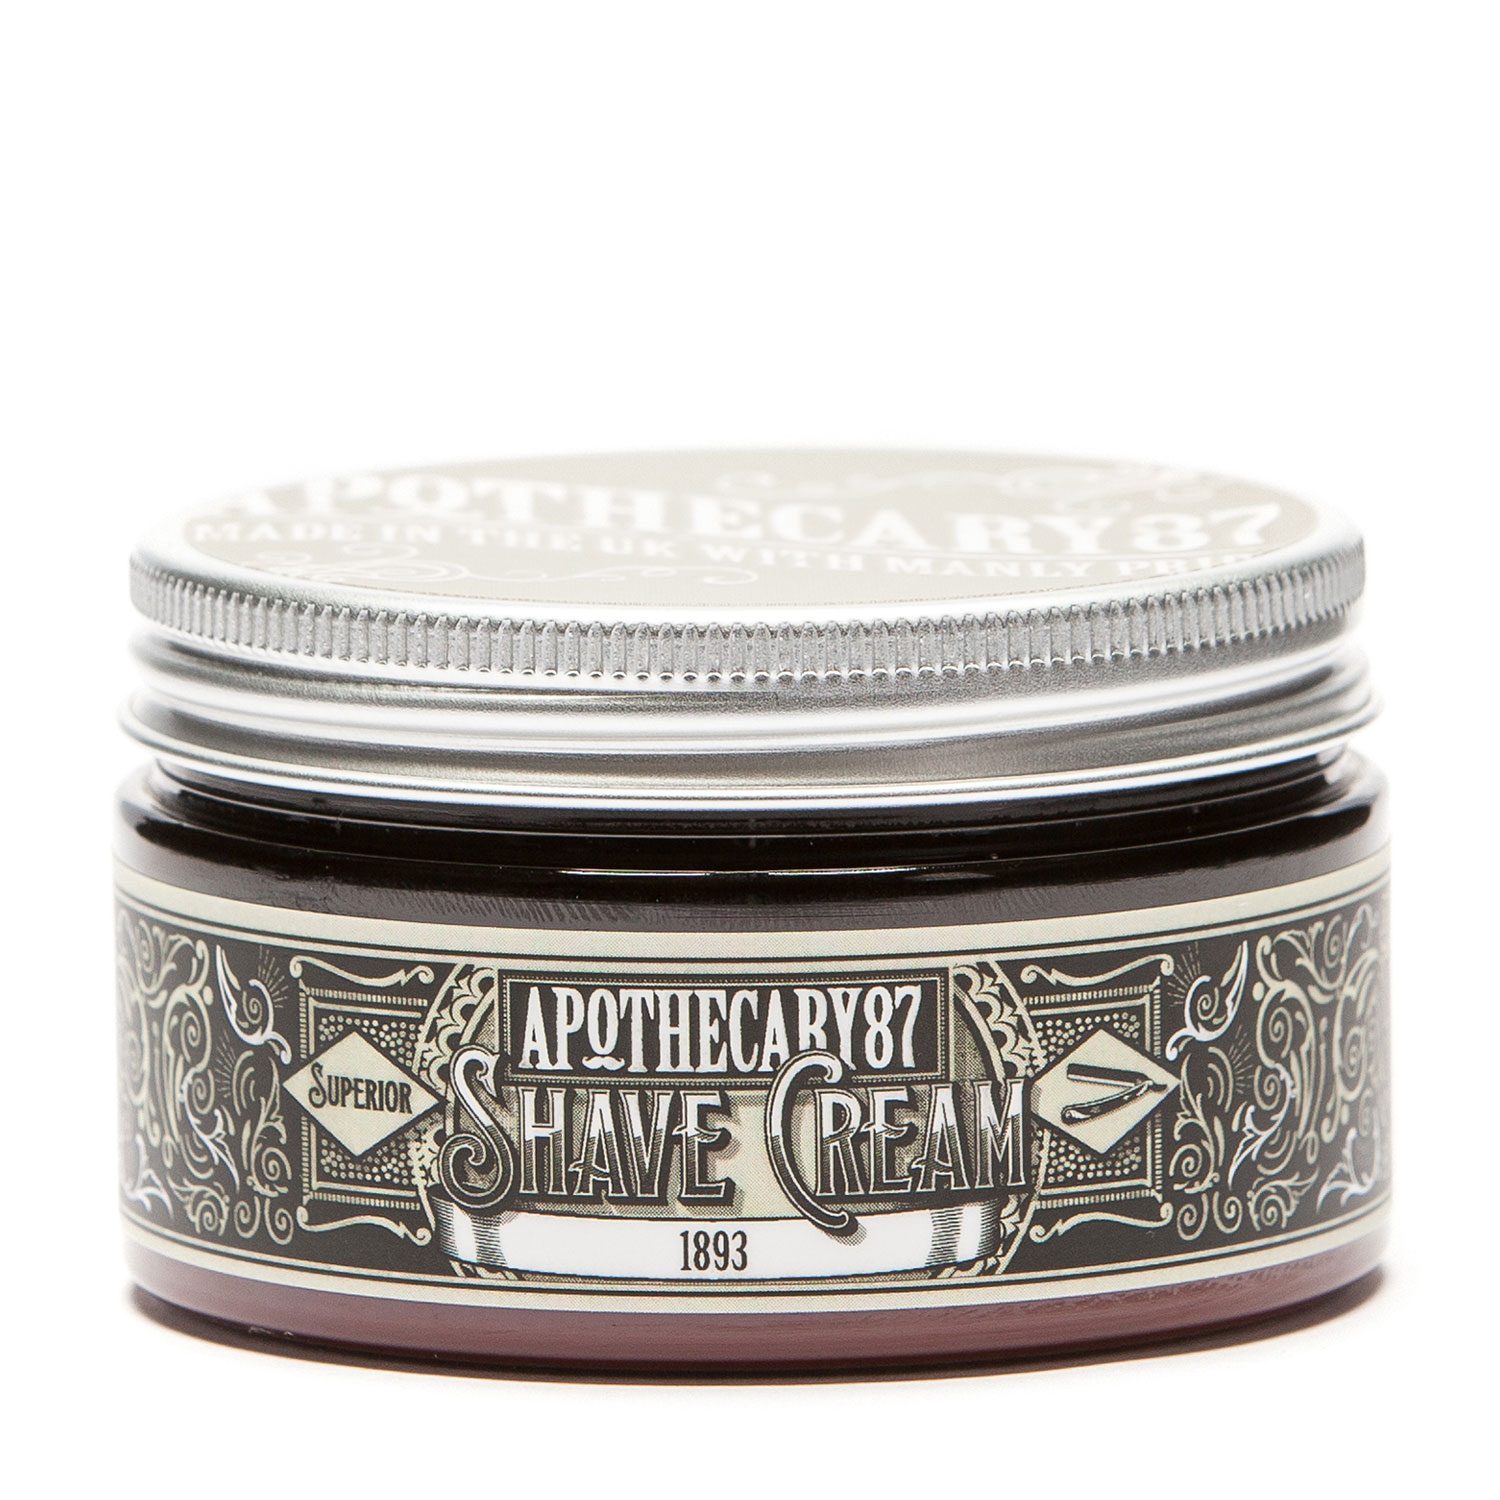 Apothecary87 Grooming - Shave Cream 1893 Fragrance